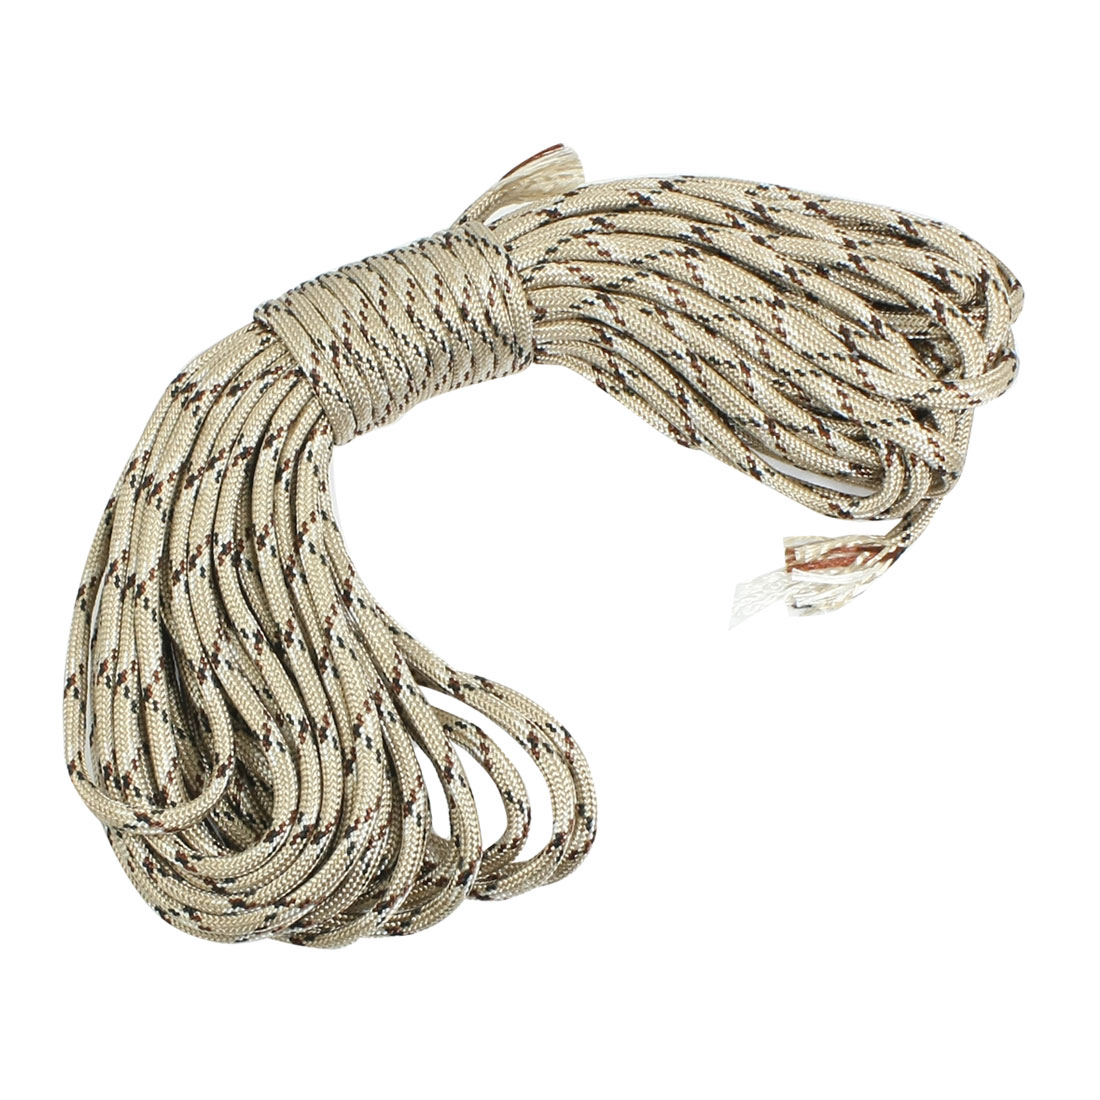 Outdoor Survival 4mm Diameter Nylon Braid Cord Khaki 32.8Ft